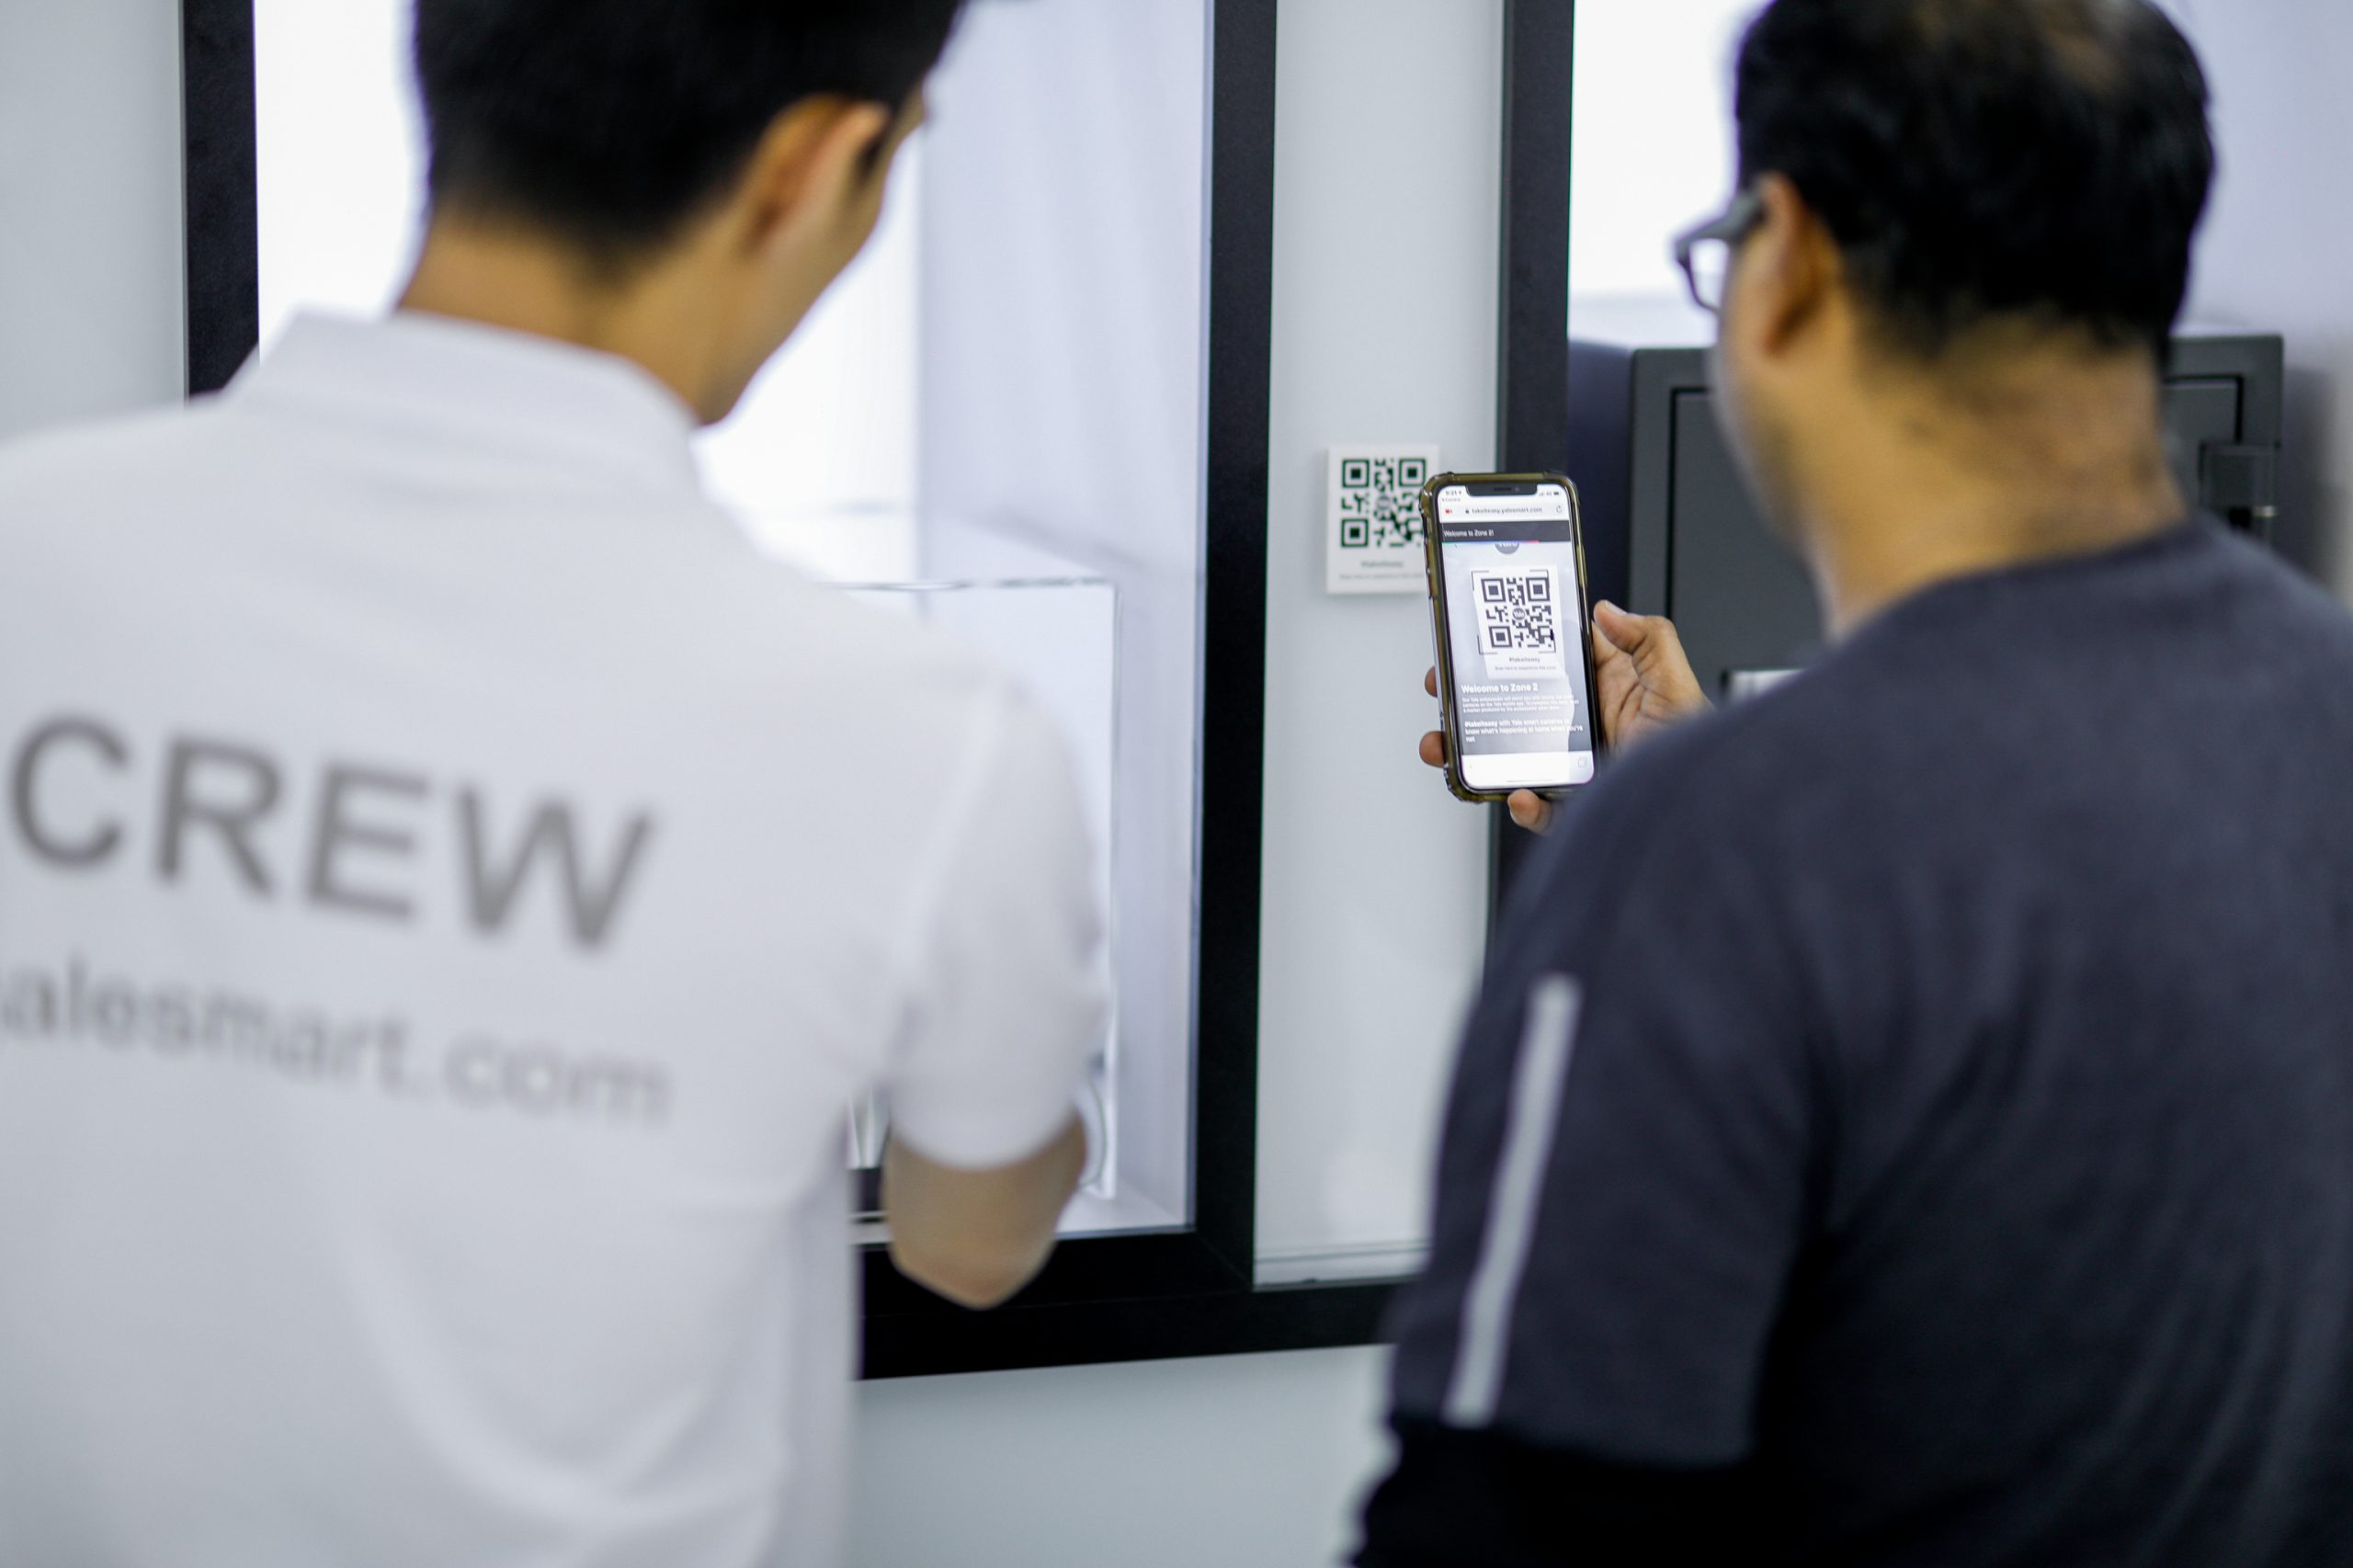 A male customer scans a QR code at the Yale Smart Shop New Retail Experience with the assistance of a brand ambassador